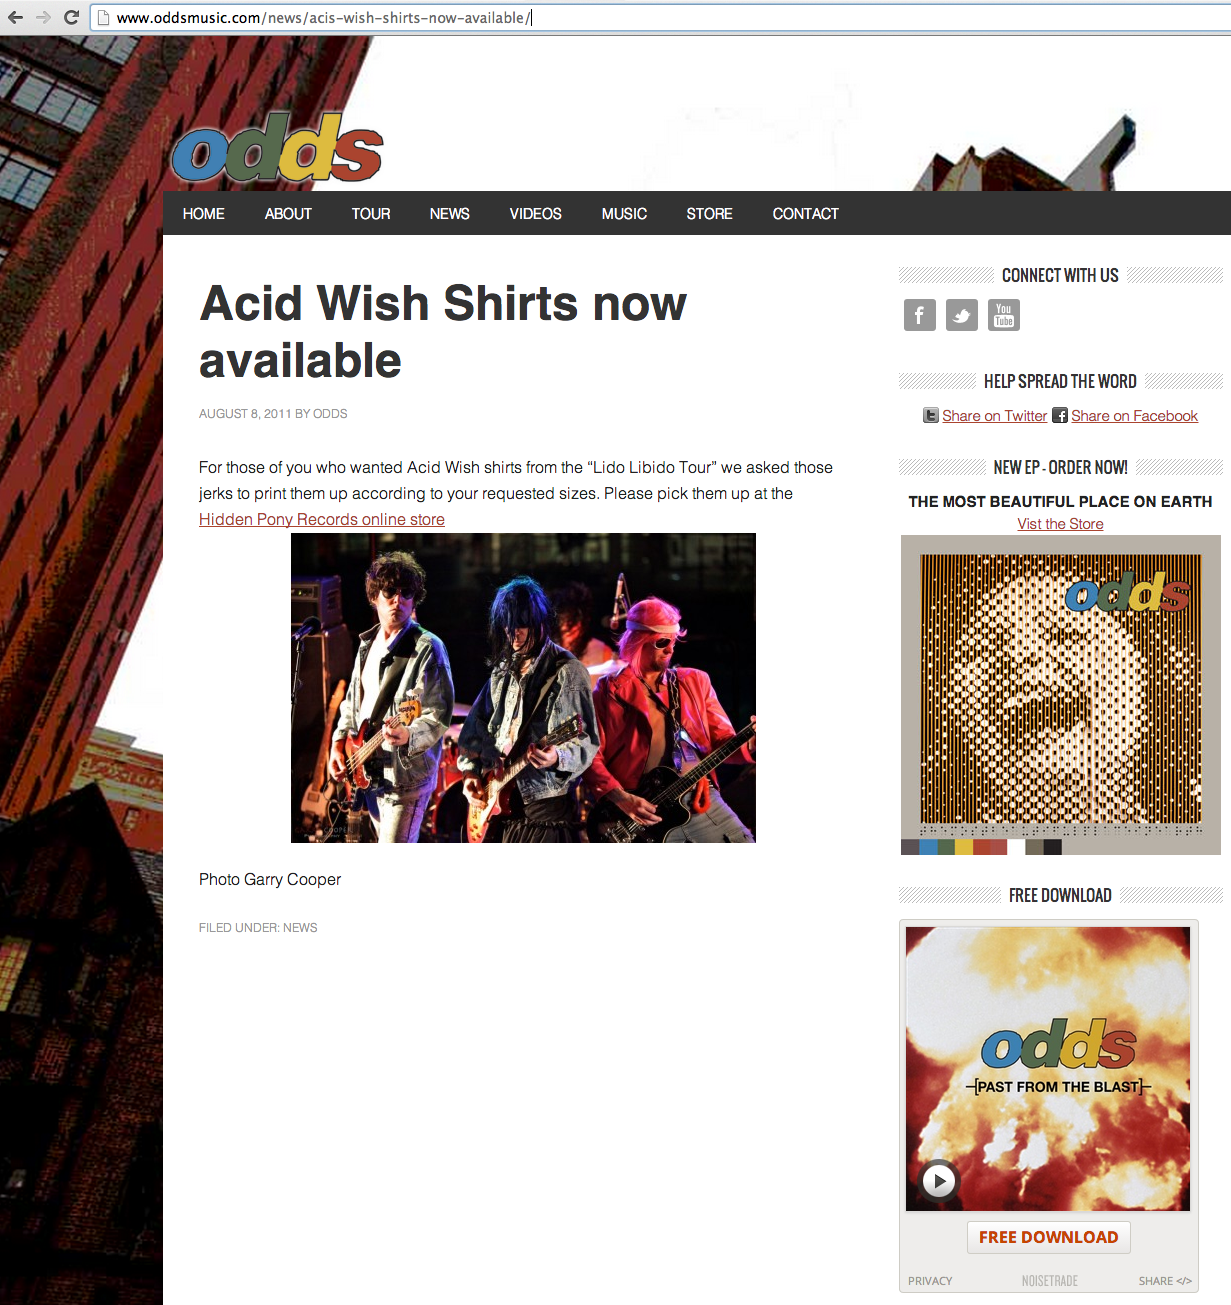 http://www.oddsmusic.com/news/acis-wish-shirts-now-available/